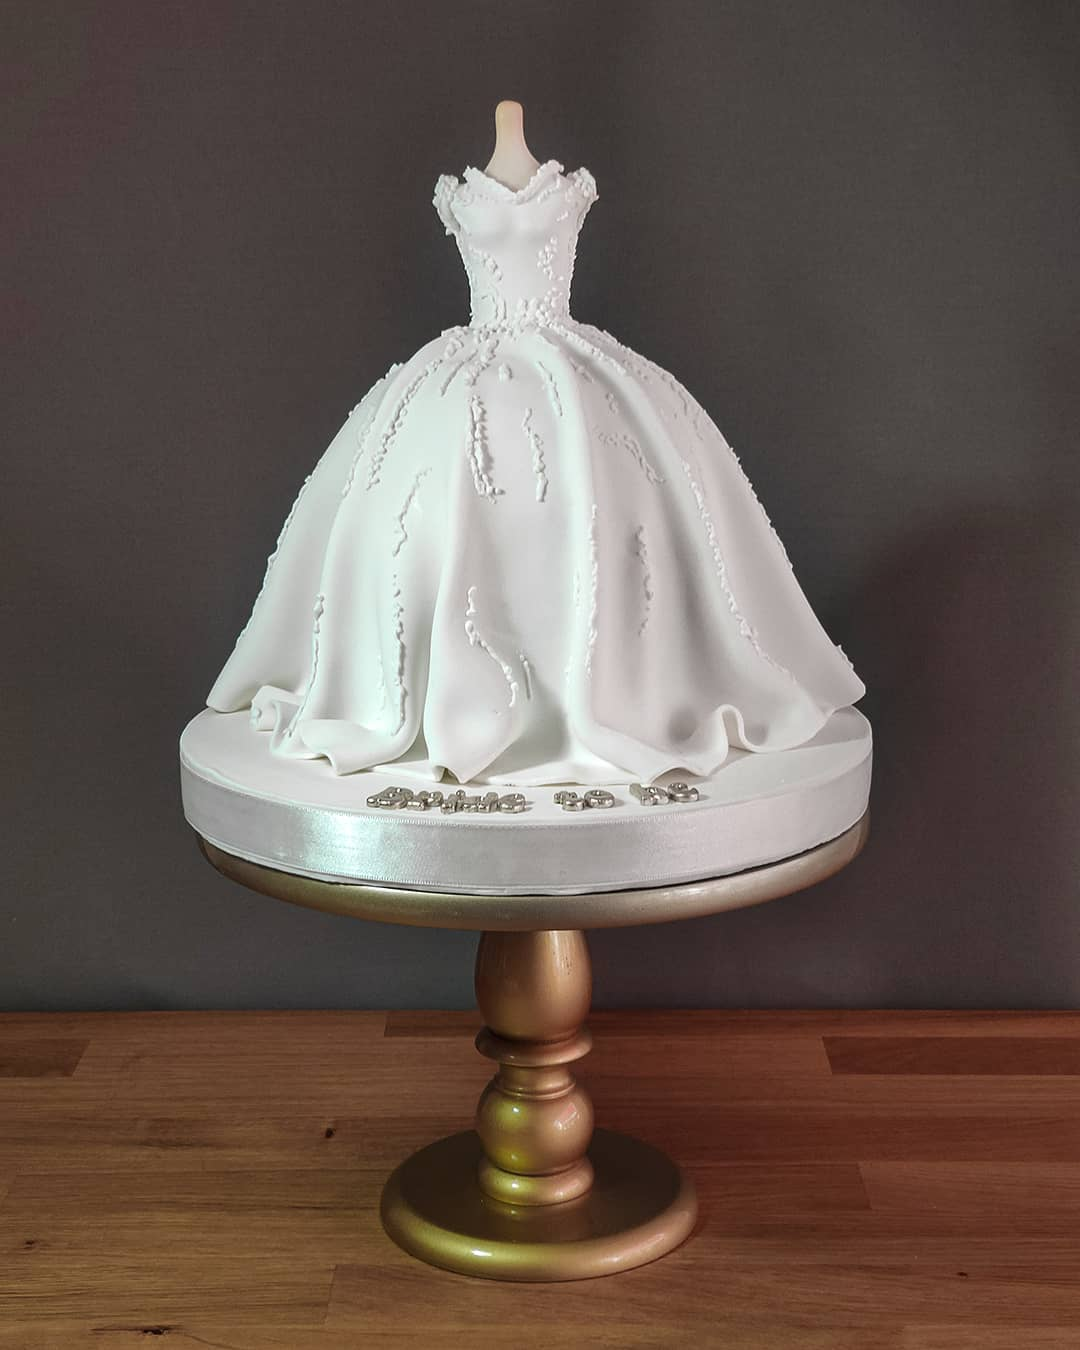 wedding gown cake idea